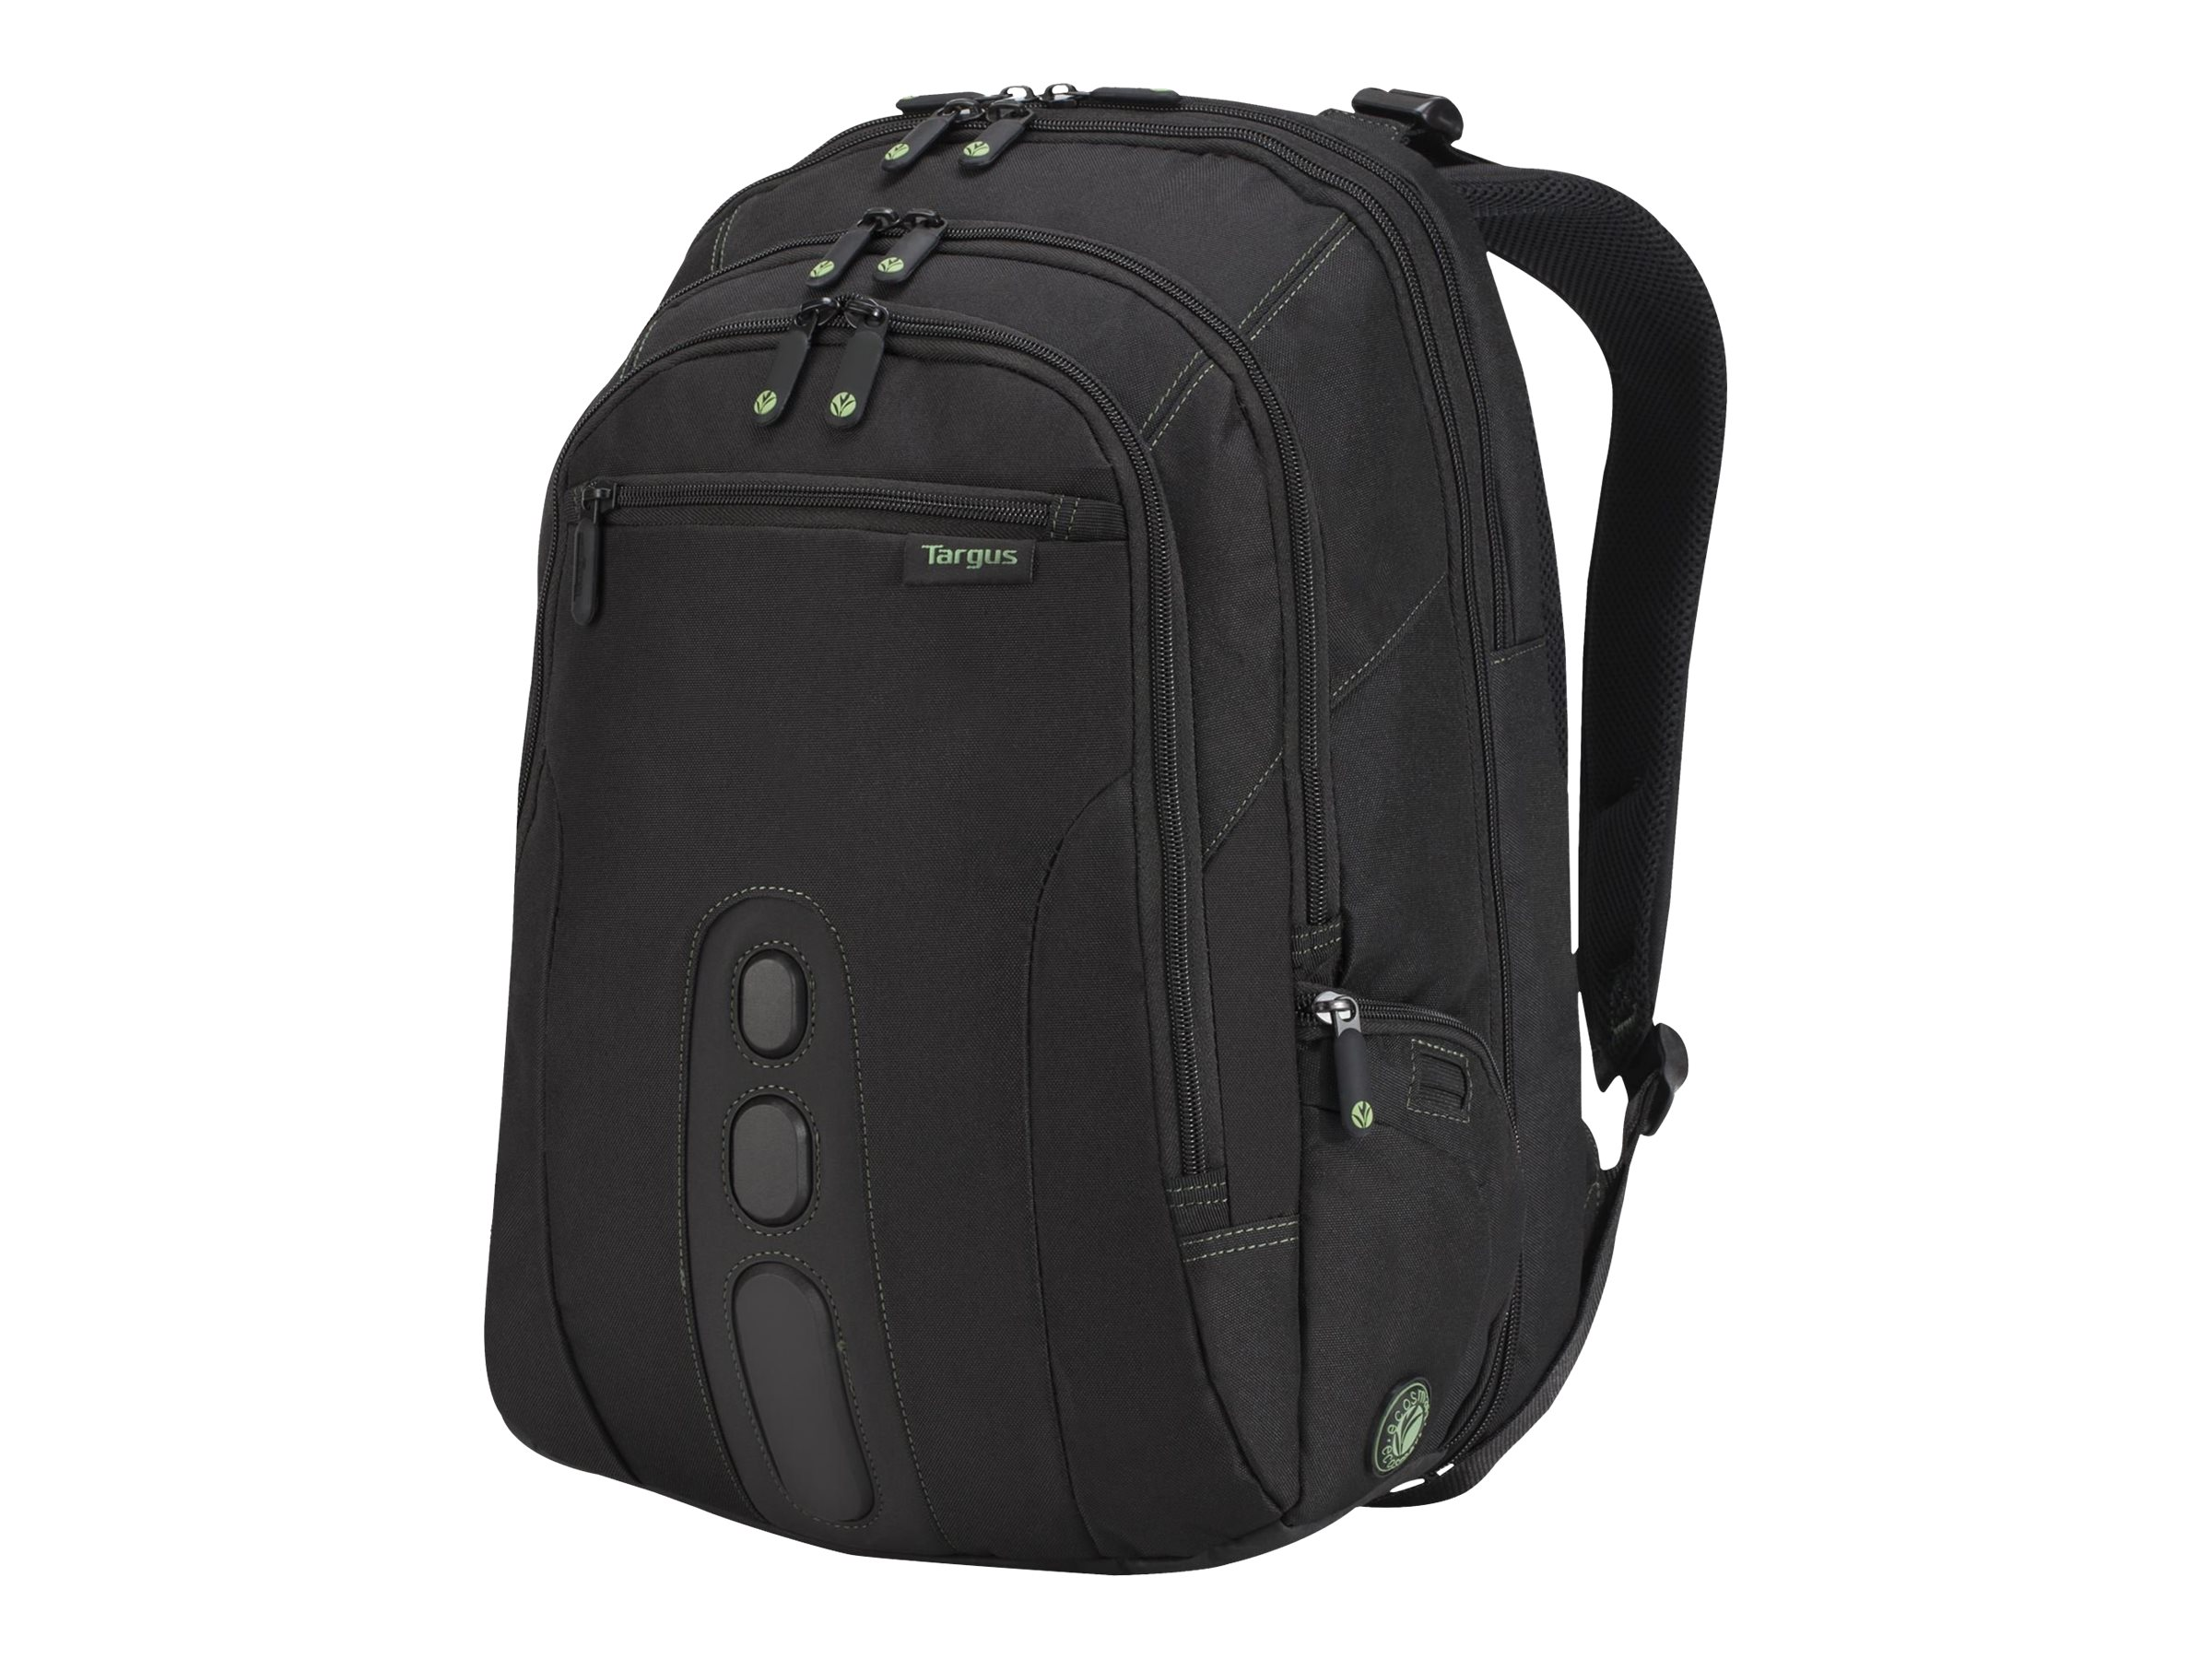 Targus Backpack Spruce Ecosmart 17 notebook, TBB019US